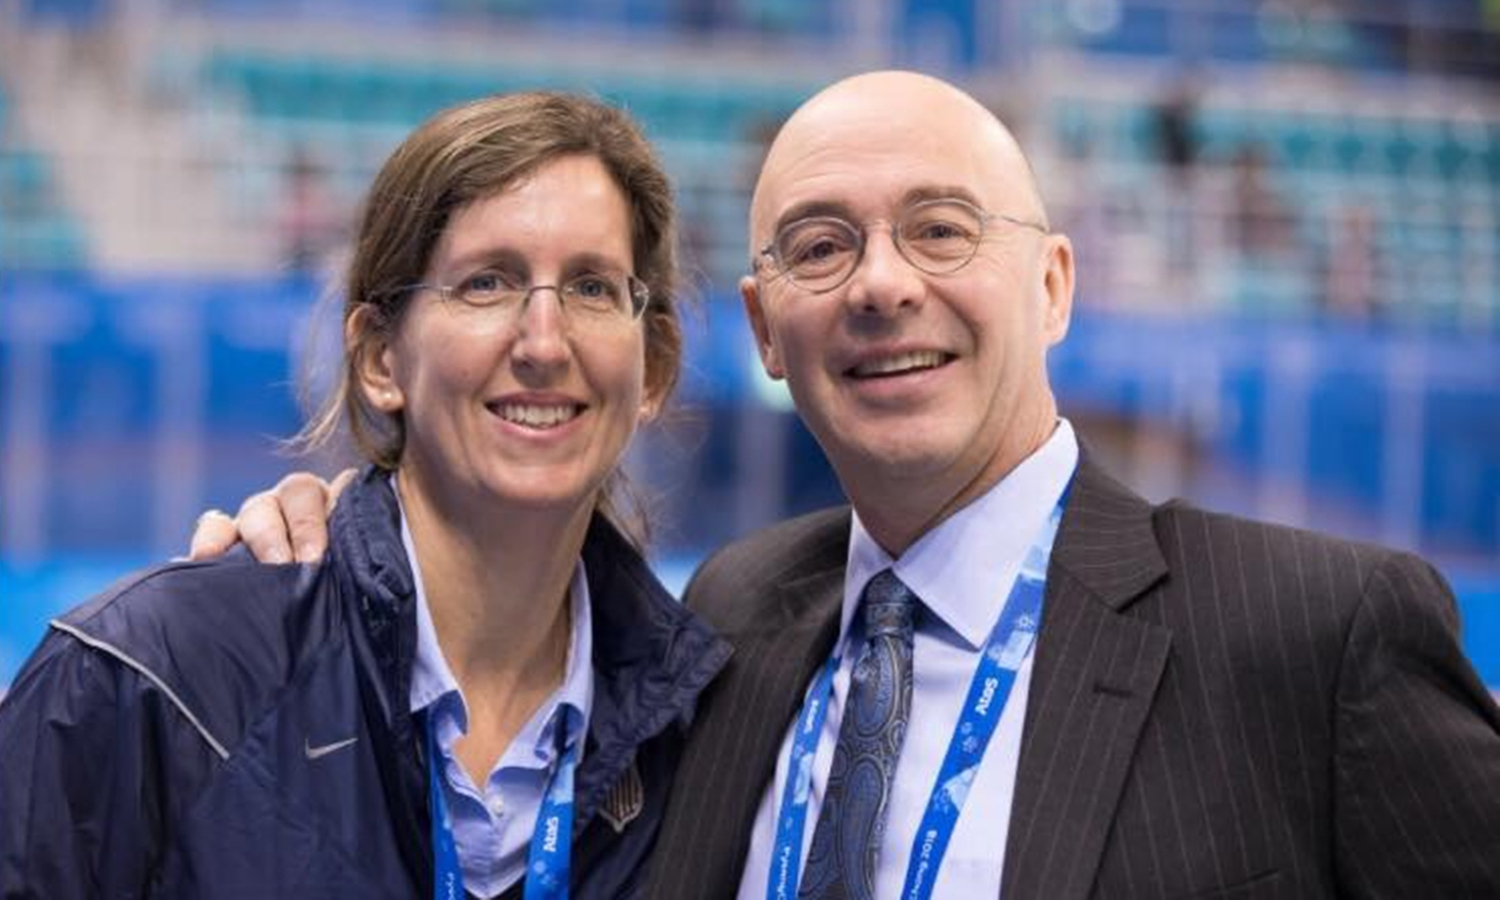 Head Physician of the U.S. Women's Hockey Team Dr. Allyson Shirtz Howe '94 poses for a photo with Emmy-award winning analyst for NBC sports Pierre McGuire '83 at the 2018 Olympics in PyeongChang, South Korea. McGuire will deliver commentary and interview hockey players competing for gold when ice hockey events begin Feb. 10.